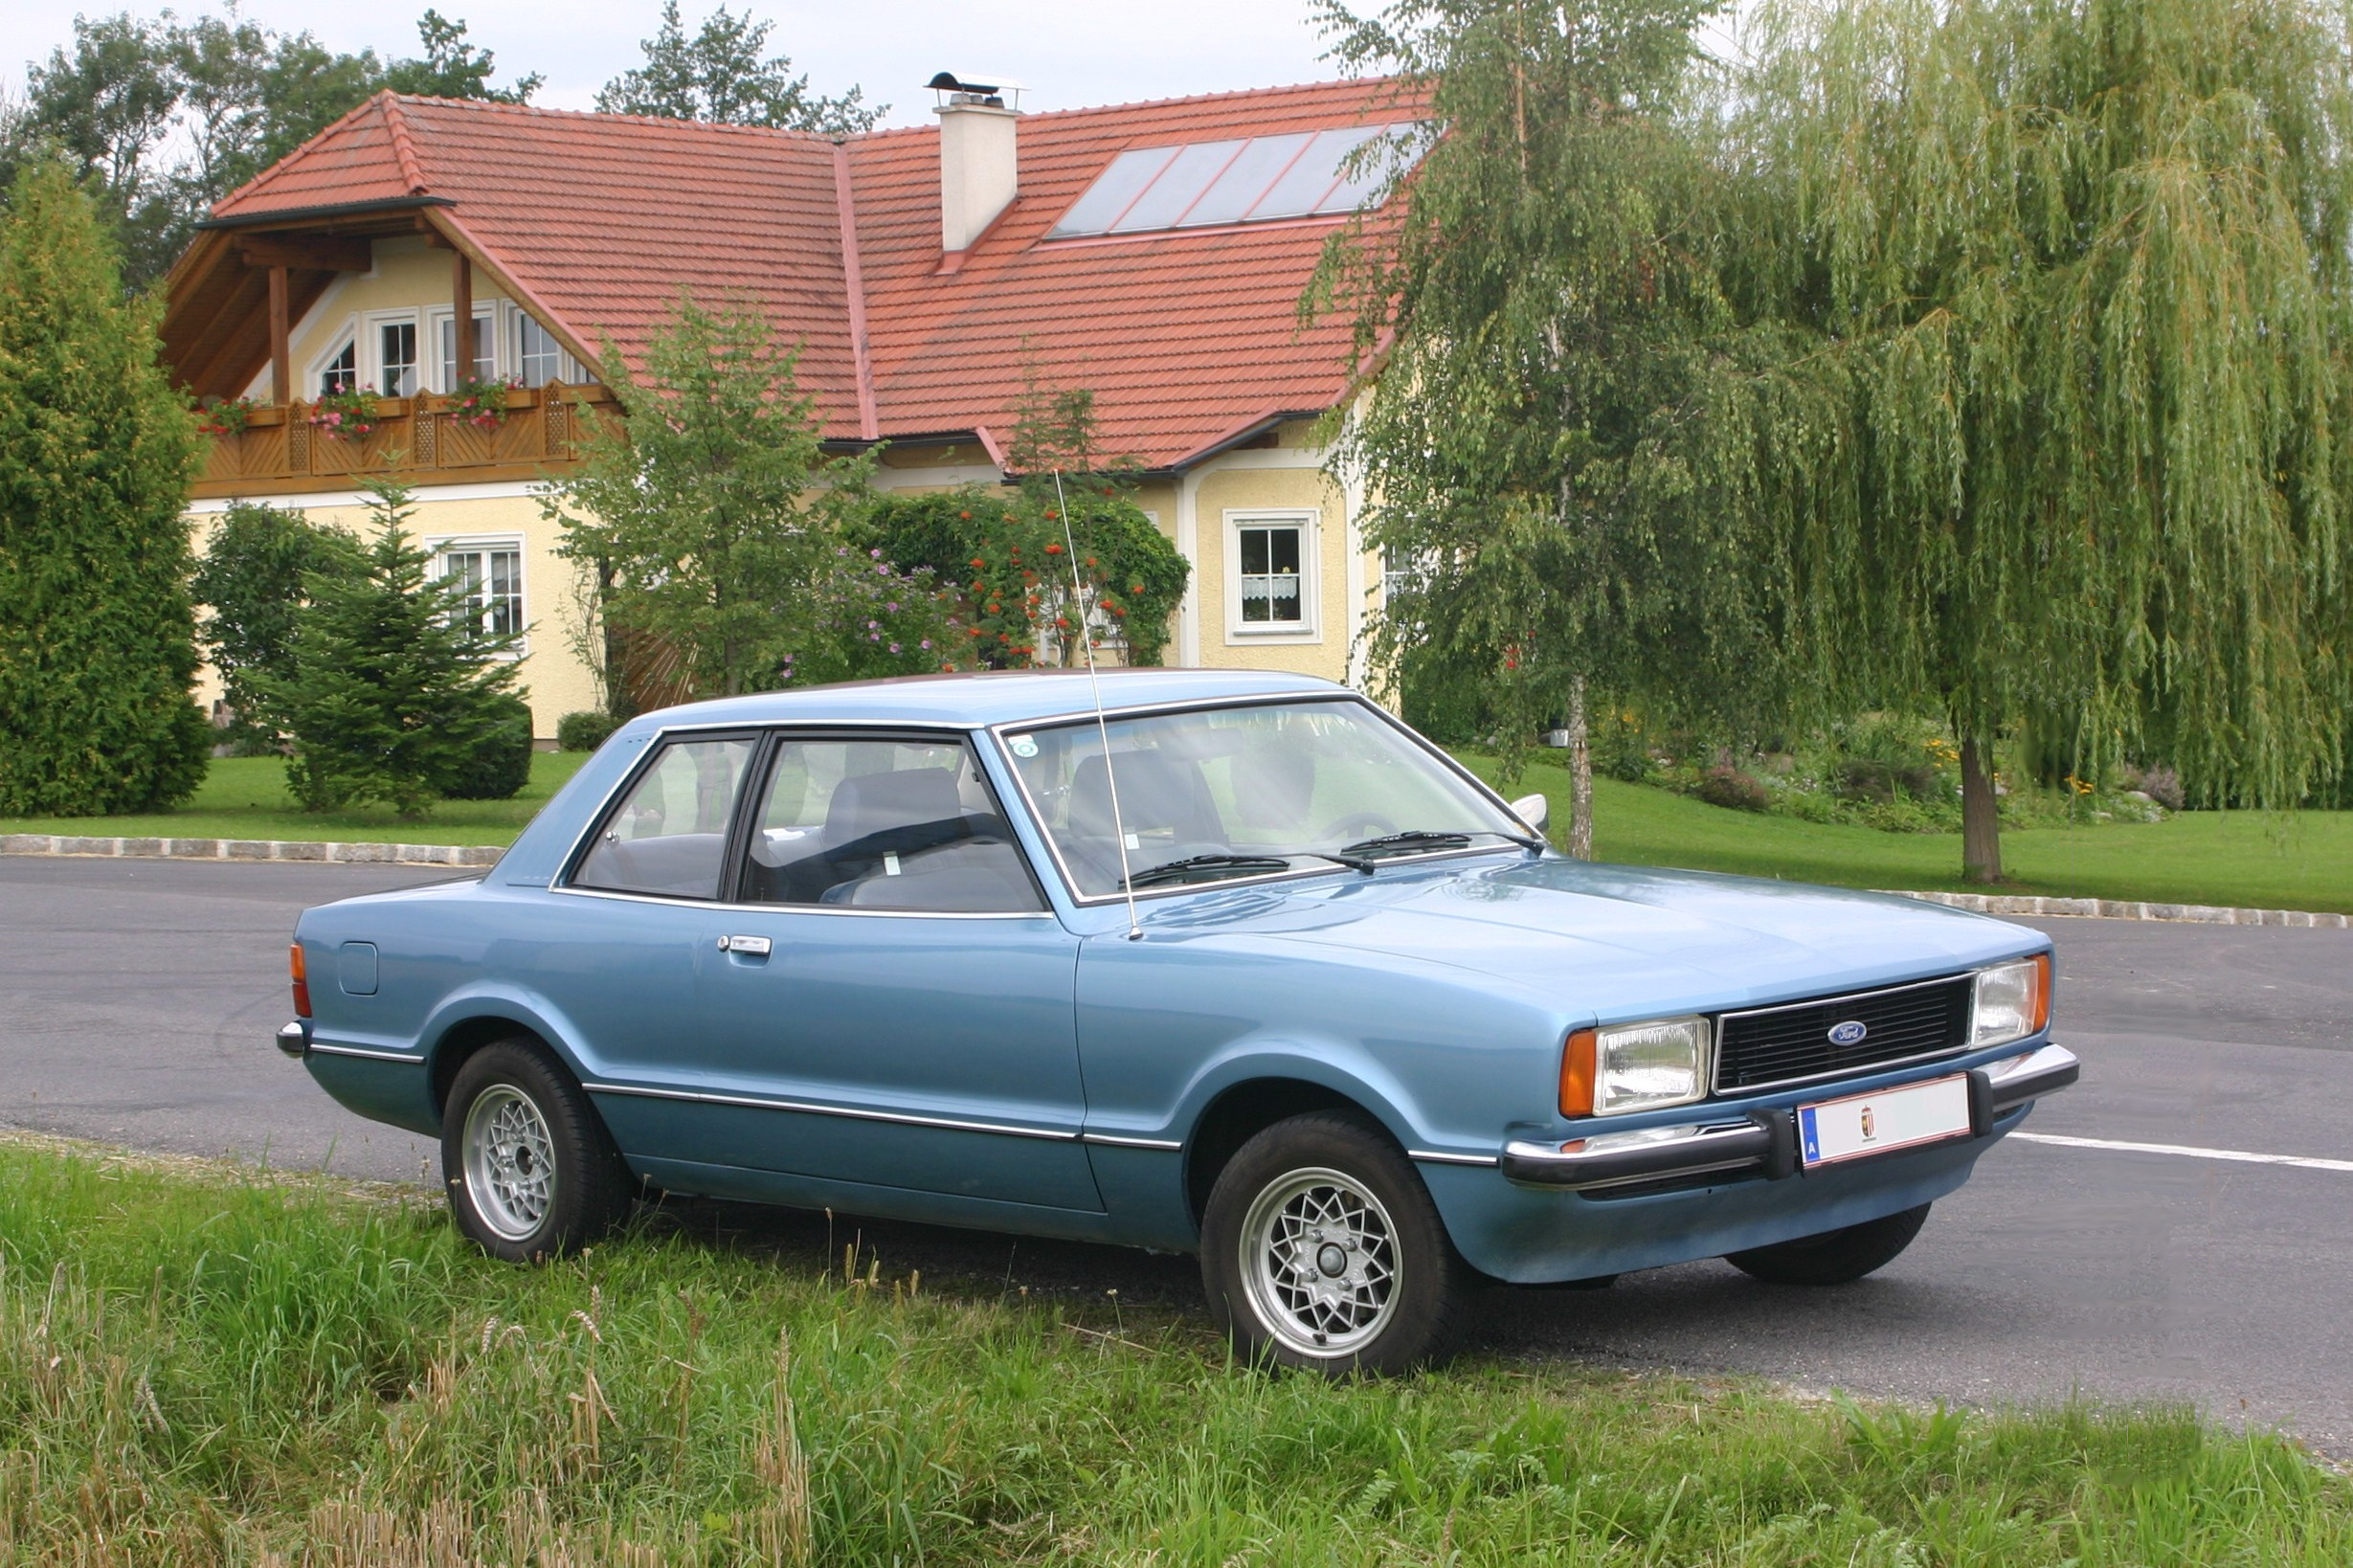 file ford taunus tc2 1 6gl wikimedia commons. Black Bedroom Furniture Sets. Home Design Ideas